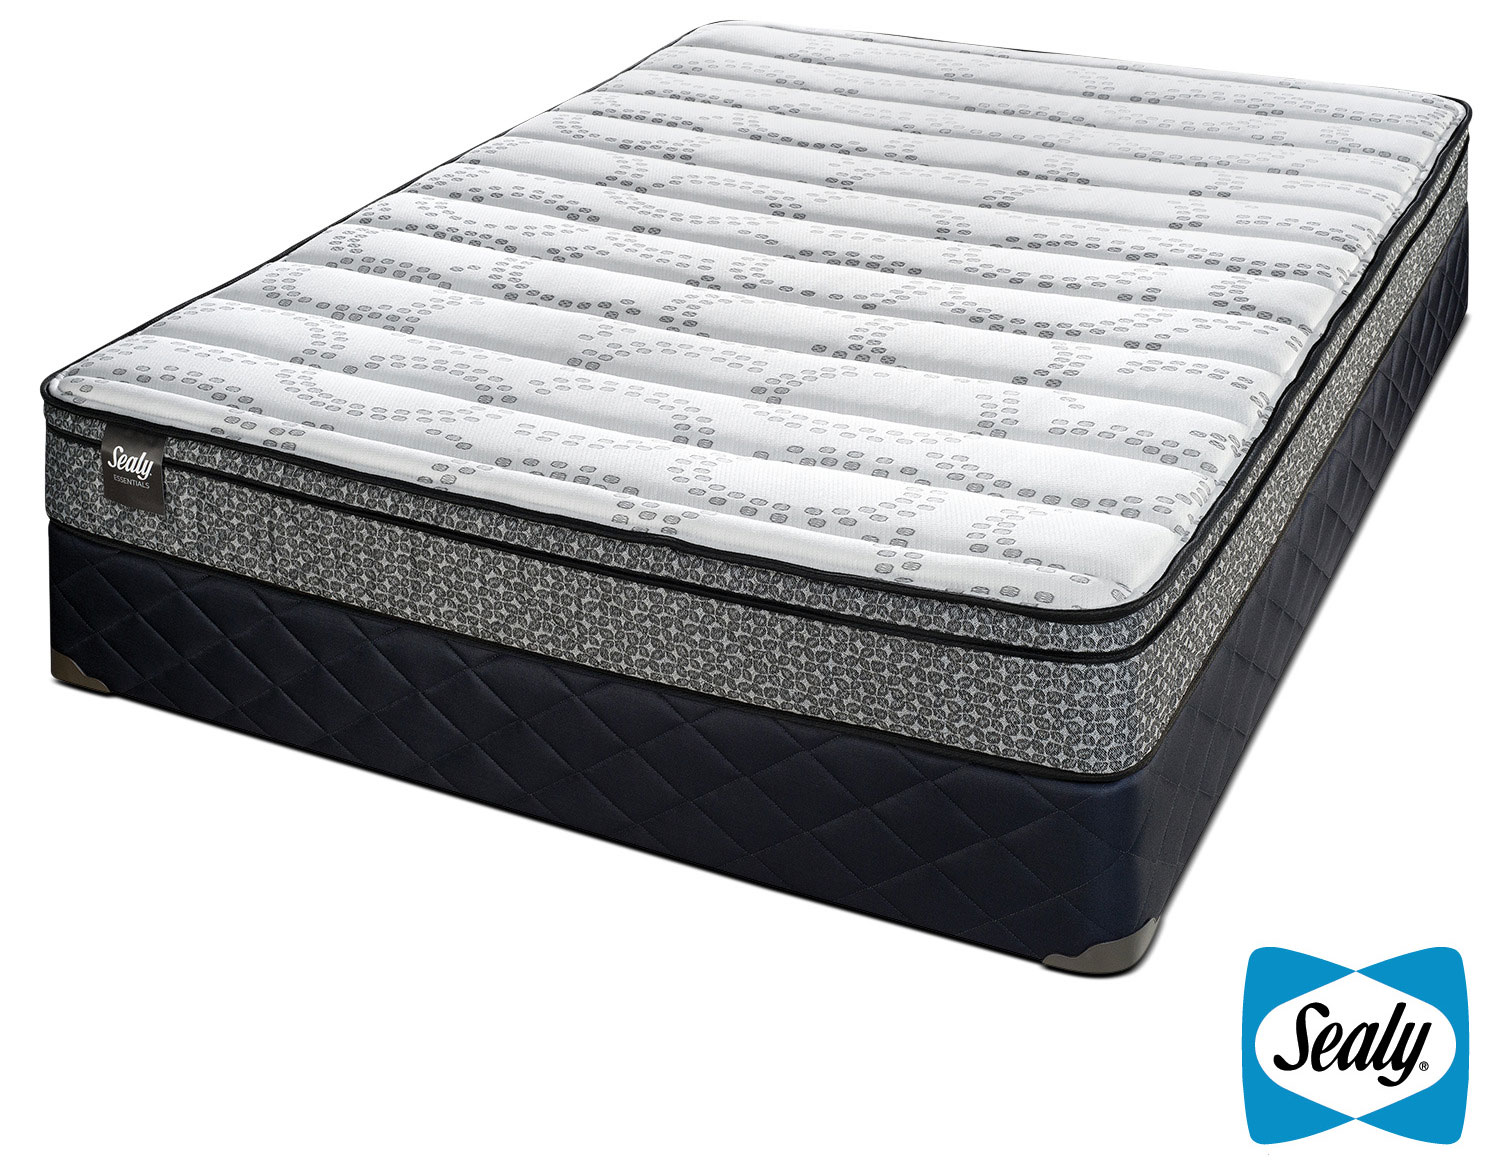 Sealy Imagine Cushion Firm Queen Mattress and Boxspring Set